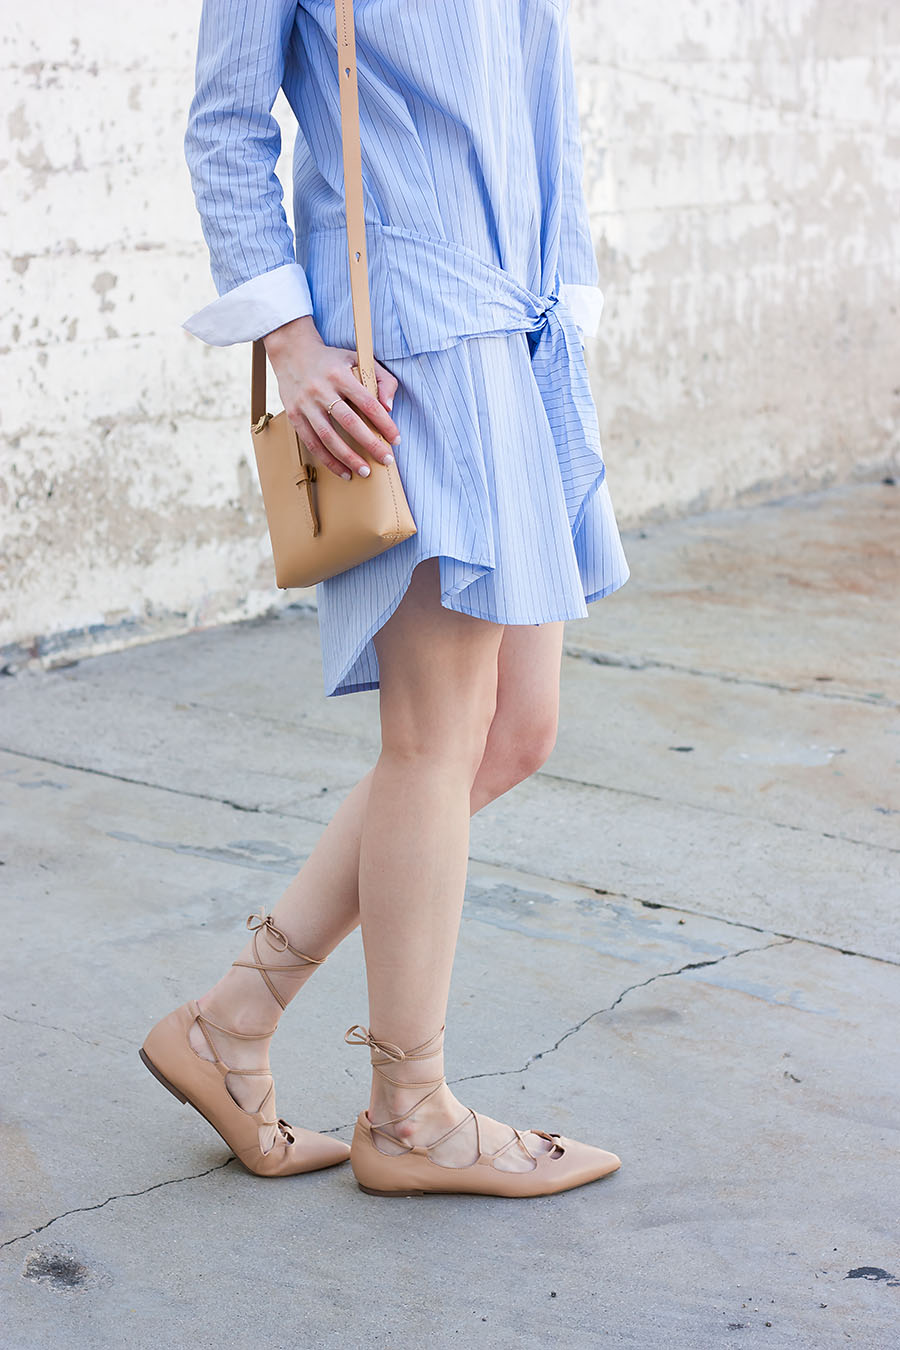 Vince Shirtdress, J.Crew Crossbody Bag, Nude Flats, Striped Dress